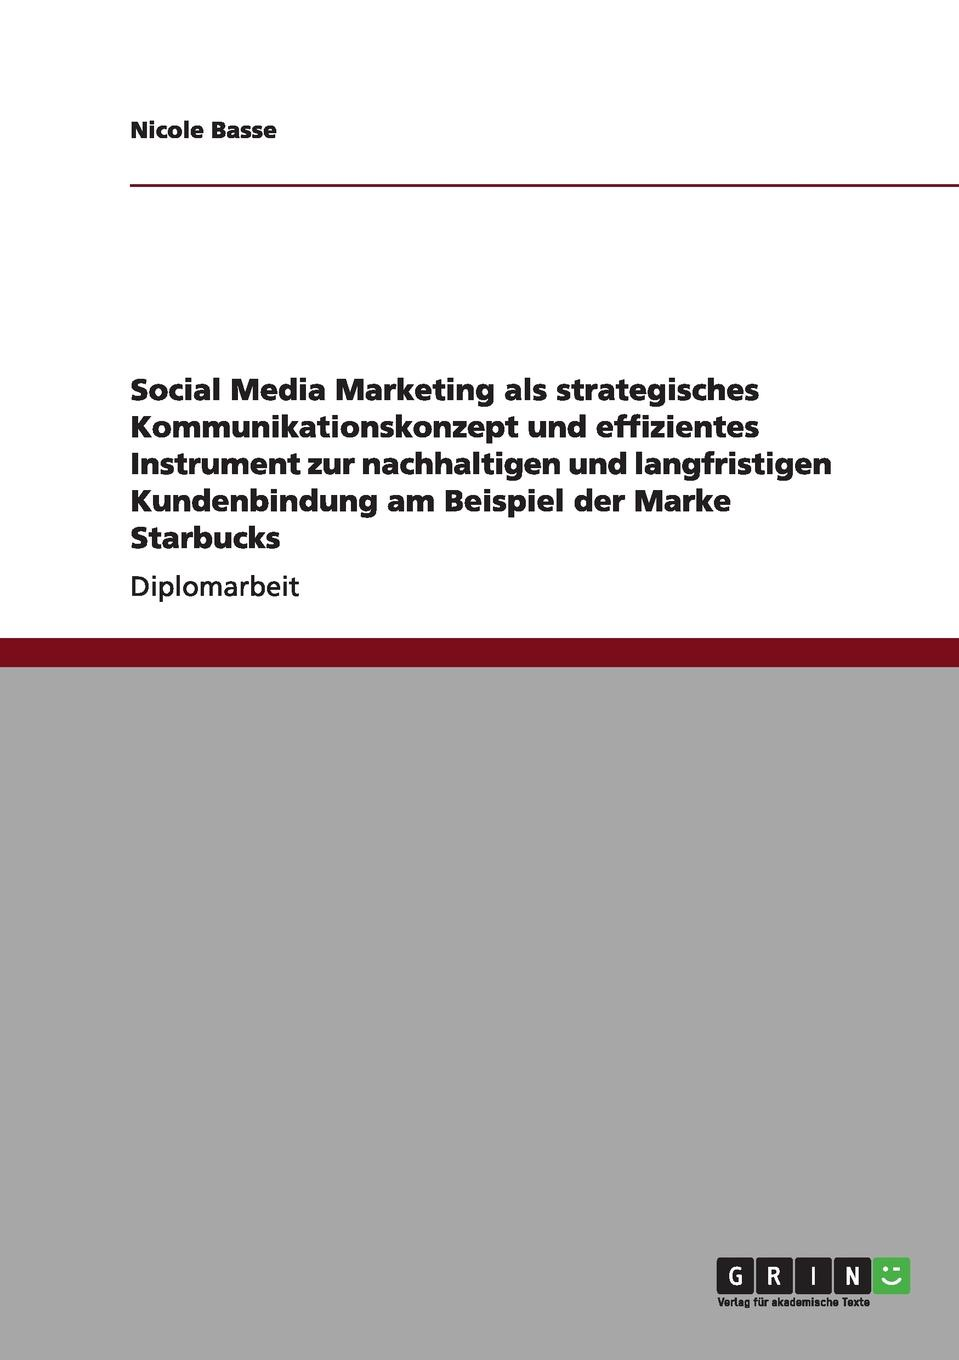 Nicole Basse Social Media Marketing als strategisches Kommunikationskonzept und Instrument zur Kundenbindung bei der Marke Starbucks неустановленный автор influencer marketing in sozialen netzwerken als strategisches instrument im social media marketing